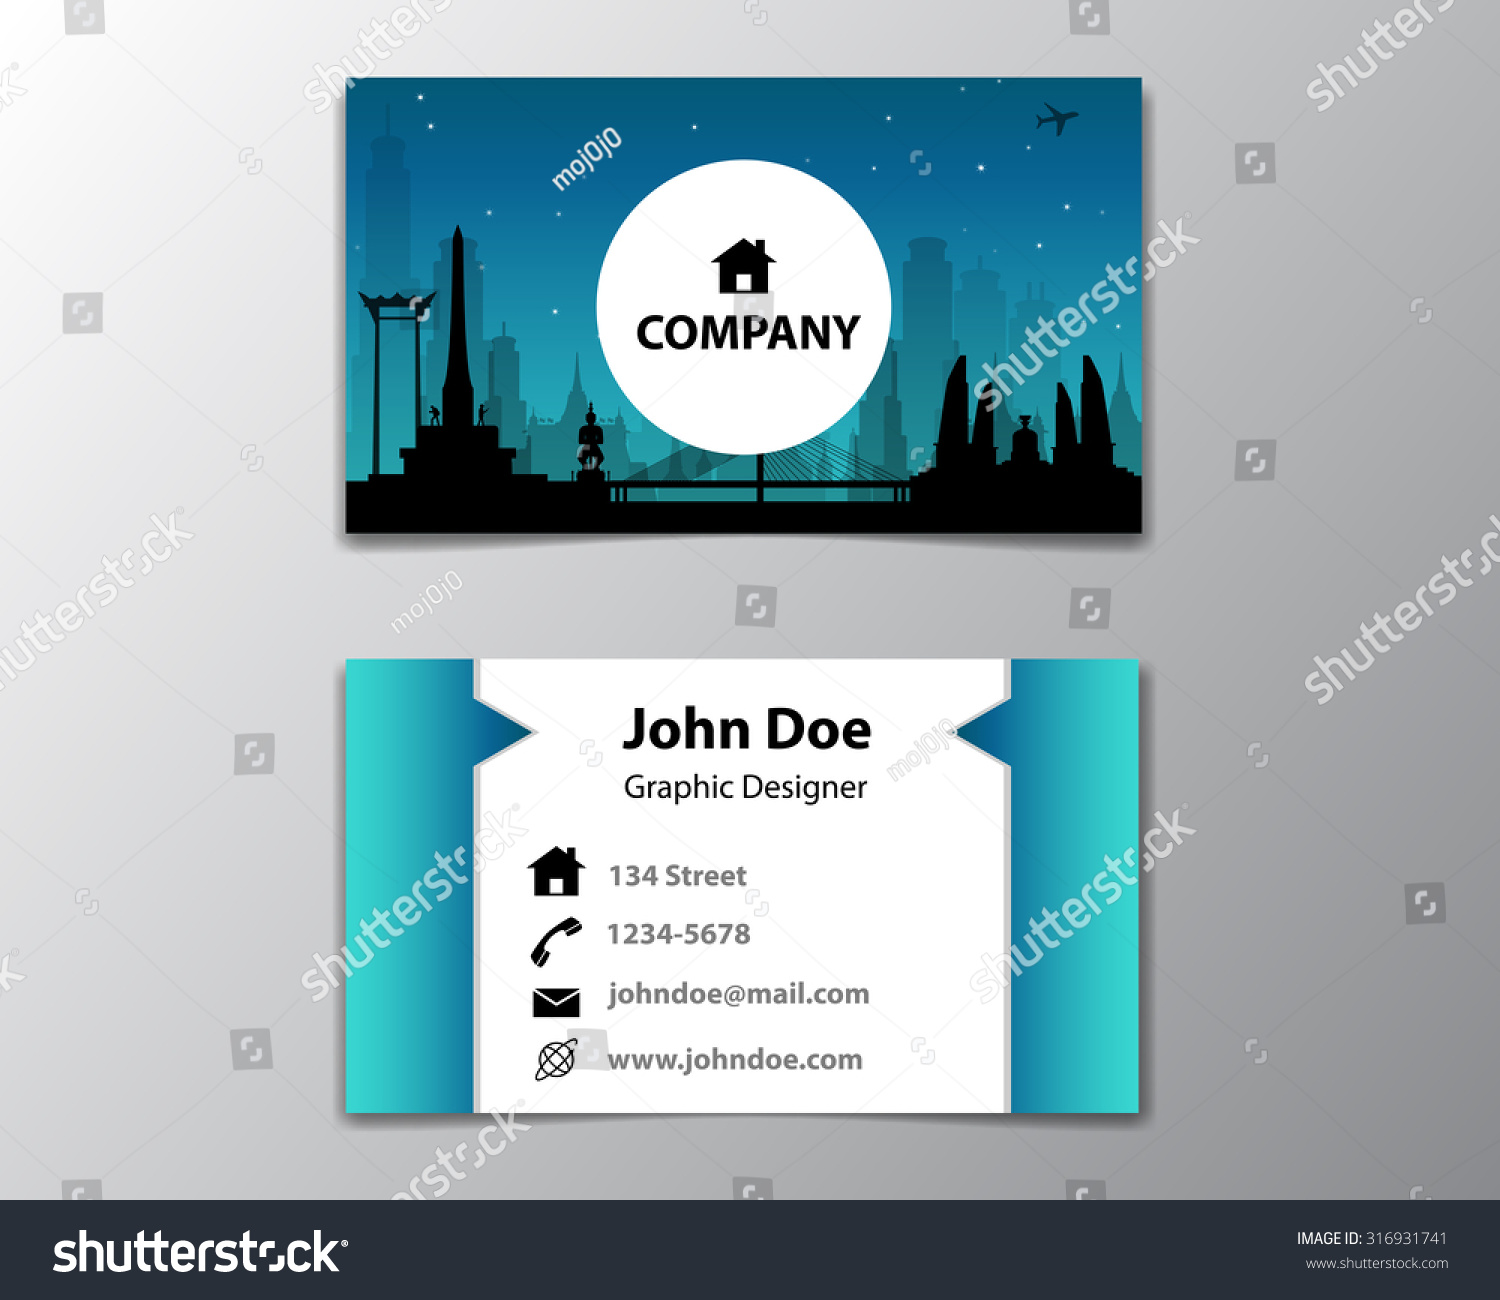 Modern Simple Business Card Template With Cityscape At Night Background